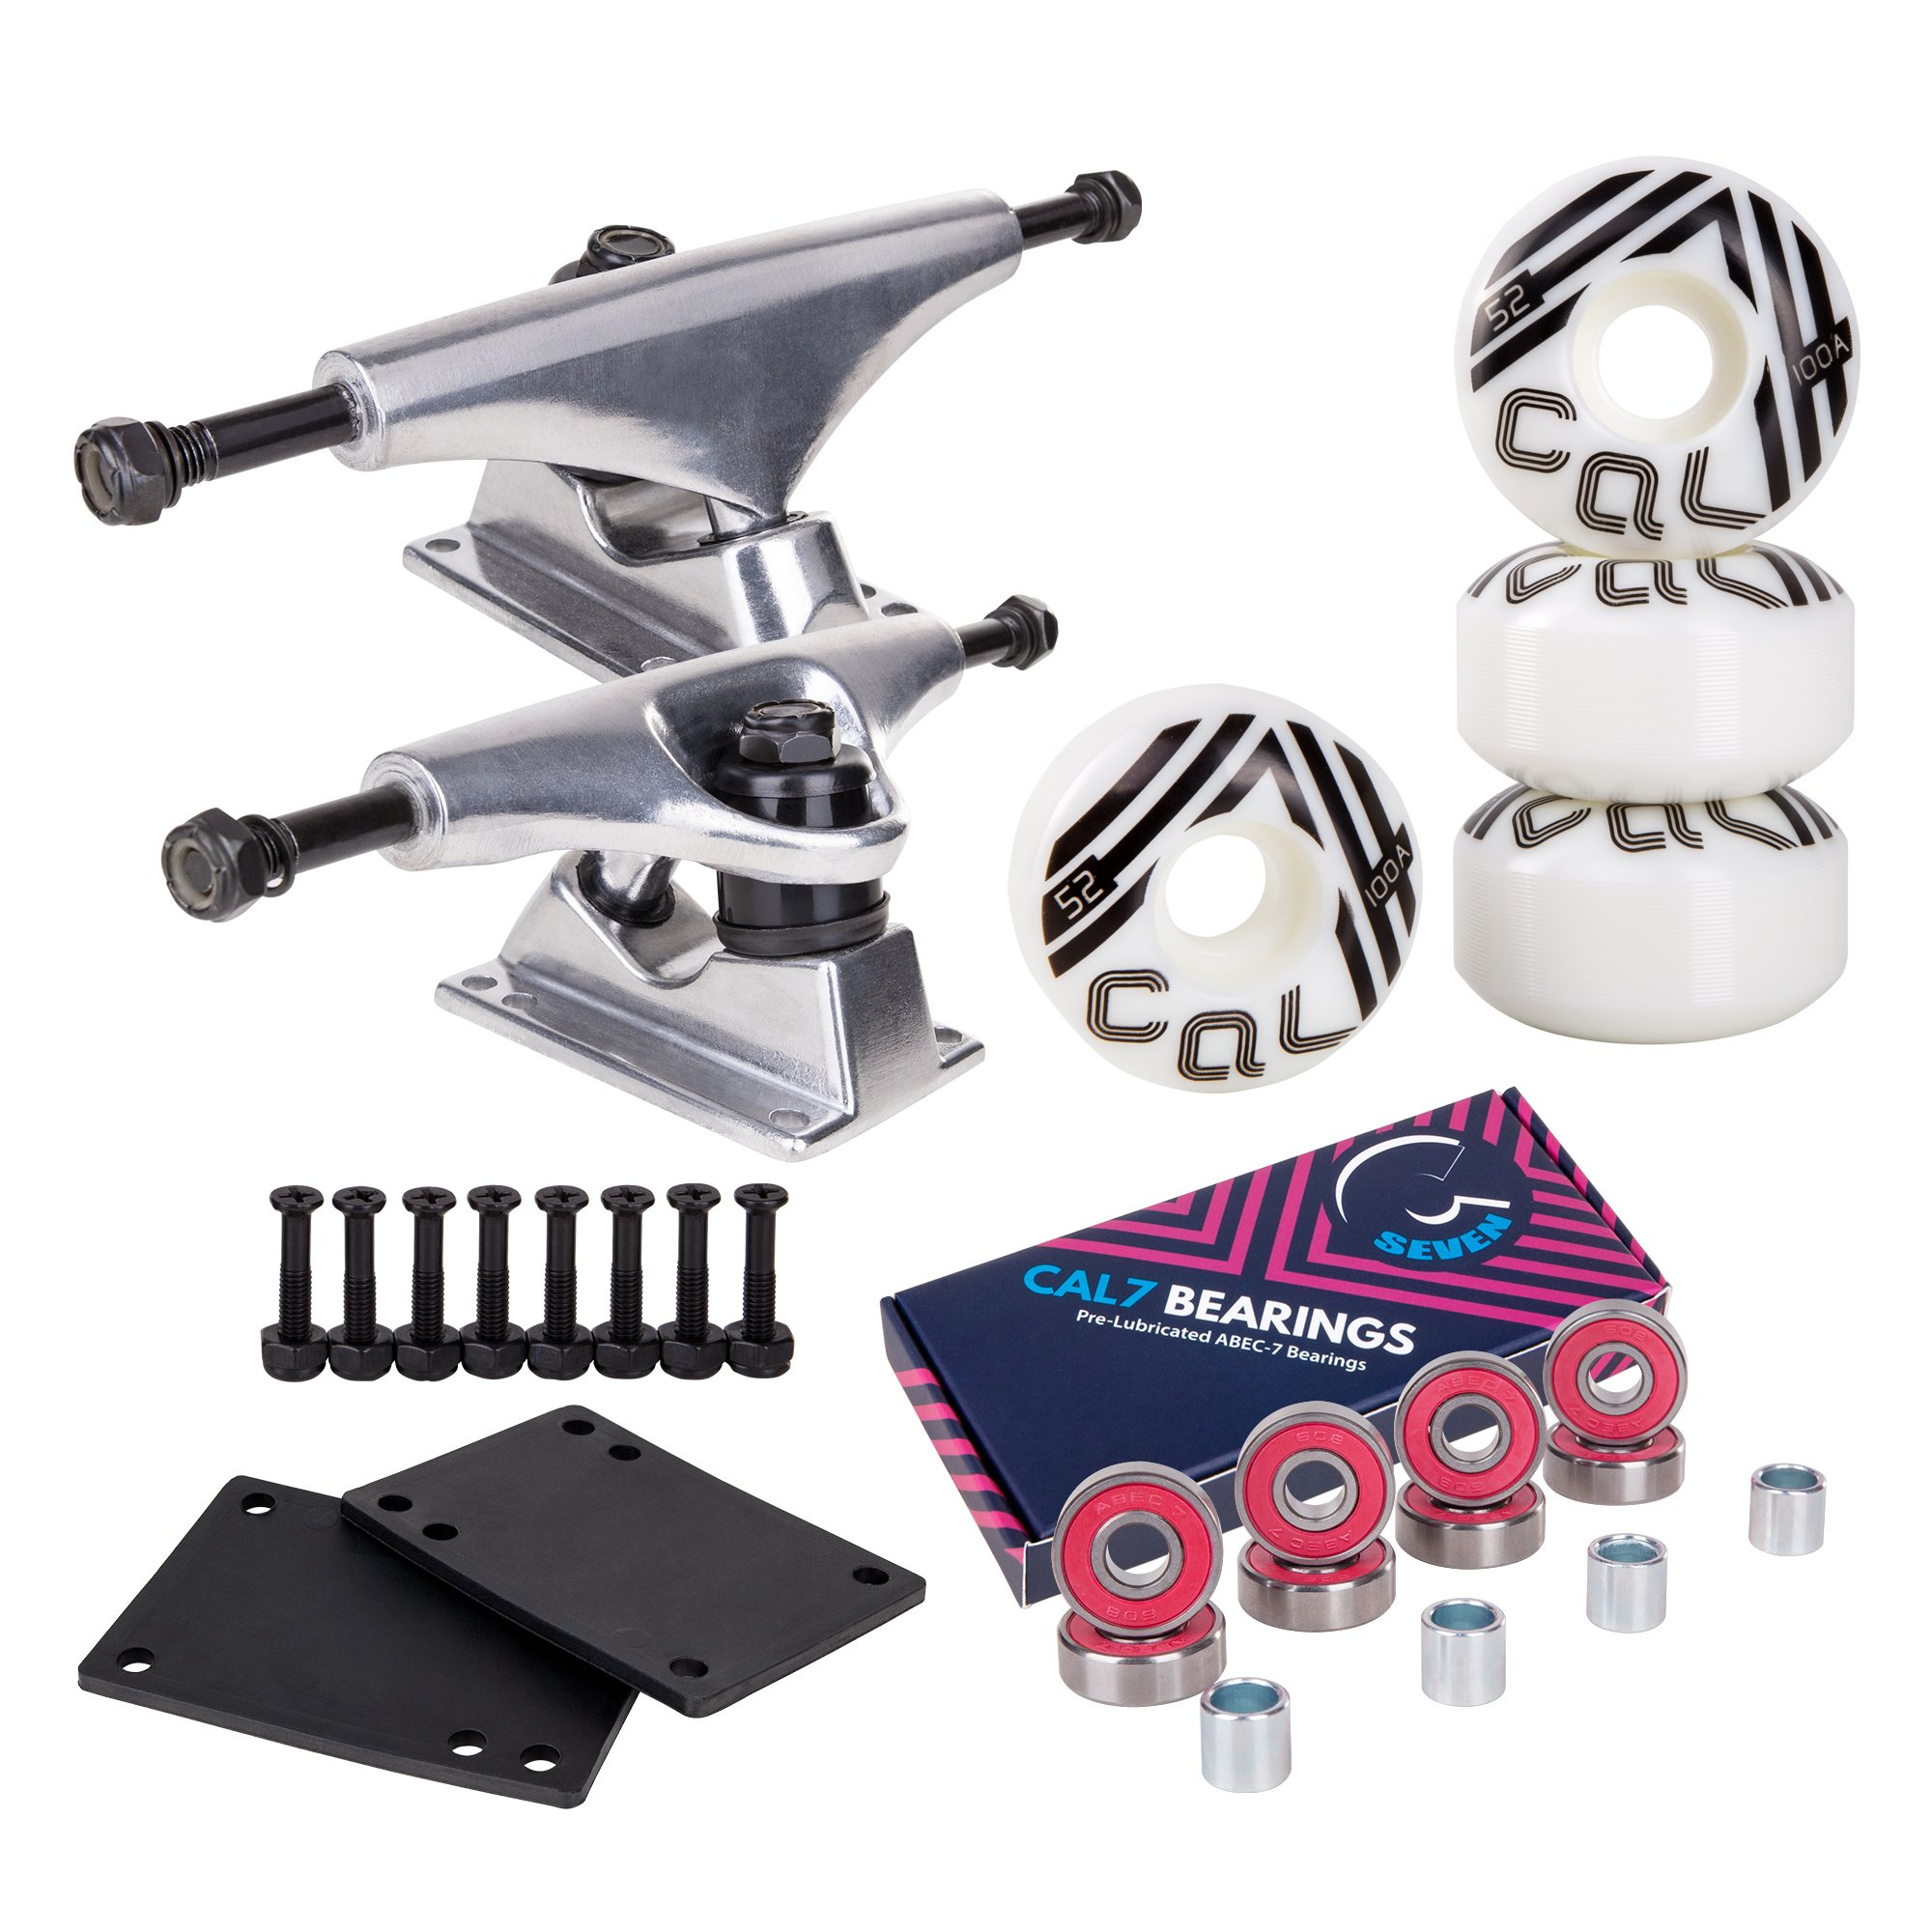 Cal 7 Skateboard Package Combo with 5 Inch / 129 Millimeter Trucks, 52mm 99A Wheels, Complete Set of Bearings and Steel Hardware (Silver Truck + White Retro Wheels) by Cal 7